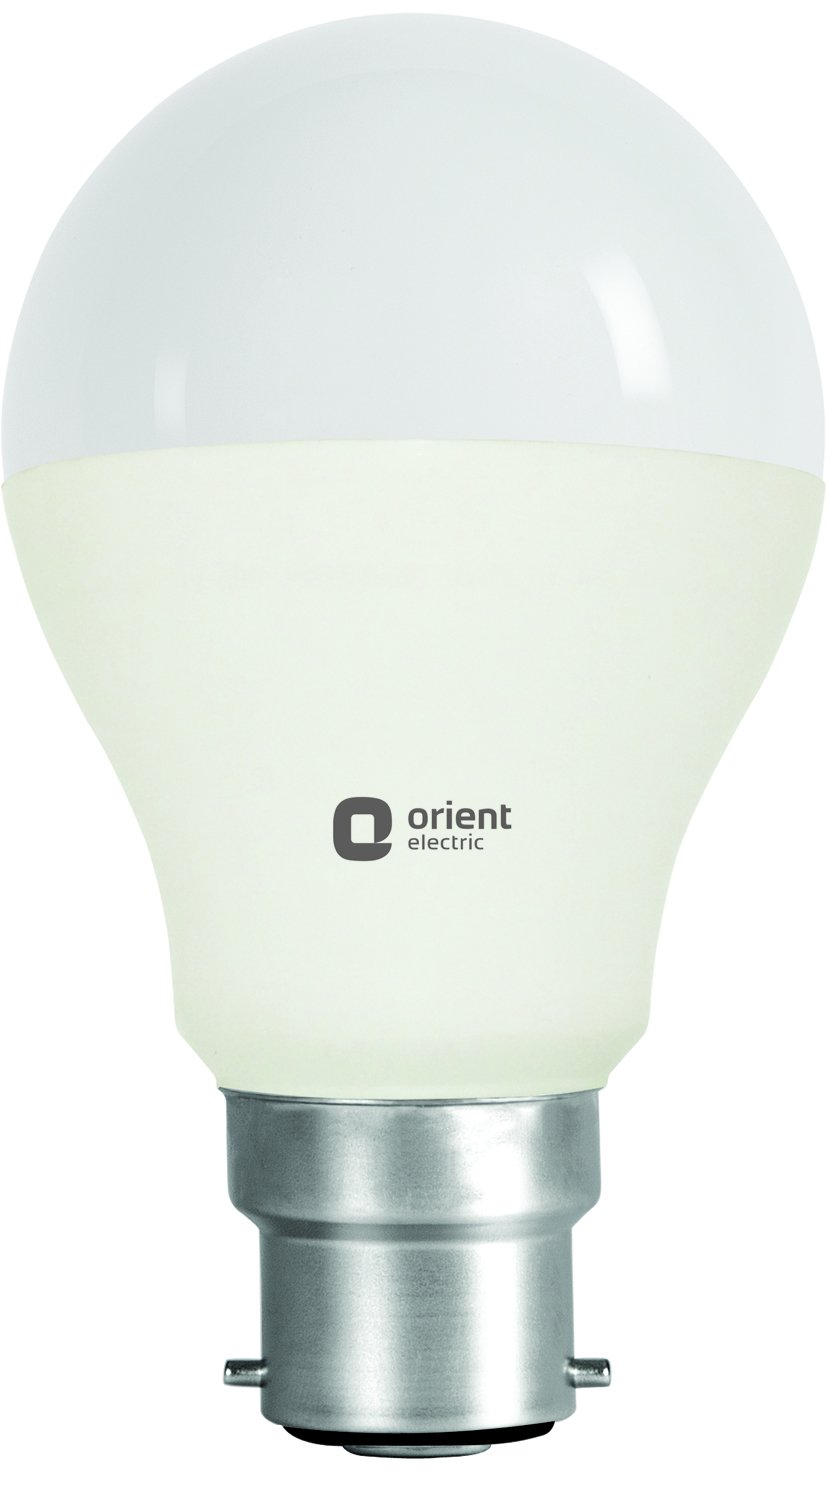 Buy Orient Electric Eternal Shine Base B22 5-Watt LED Bulb (Cool White) Online at Low Prices in India - Amazon.in  sc 1 st  Amazon India & Buy Orient Electric Eternal Shine Base B22 5-Watt LED Bulb (Cool ... azcodes.com